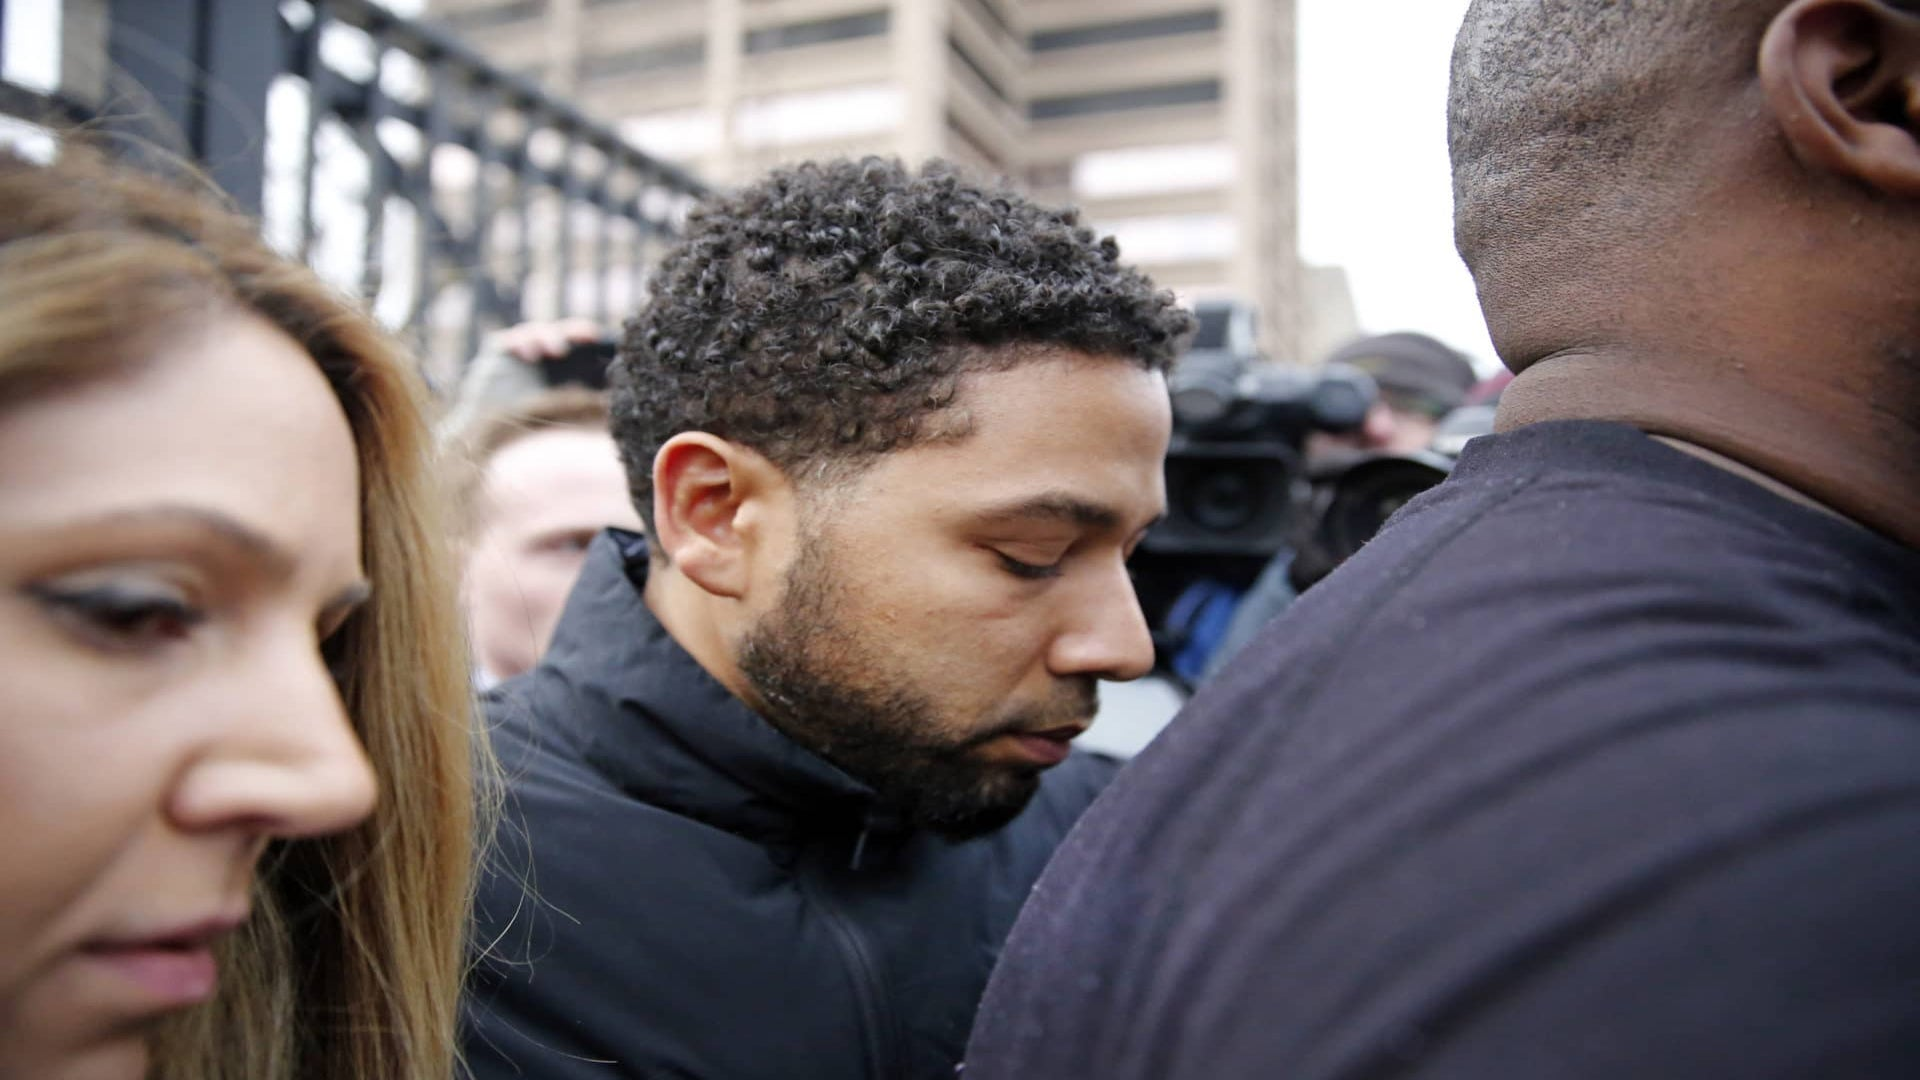 'What If Jussie Is Telling The Truth?': Jussie Smollett's Brother Pens Op-Ed In Actor's Defense